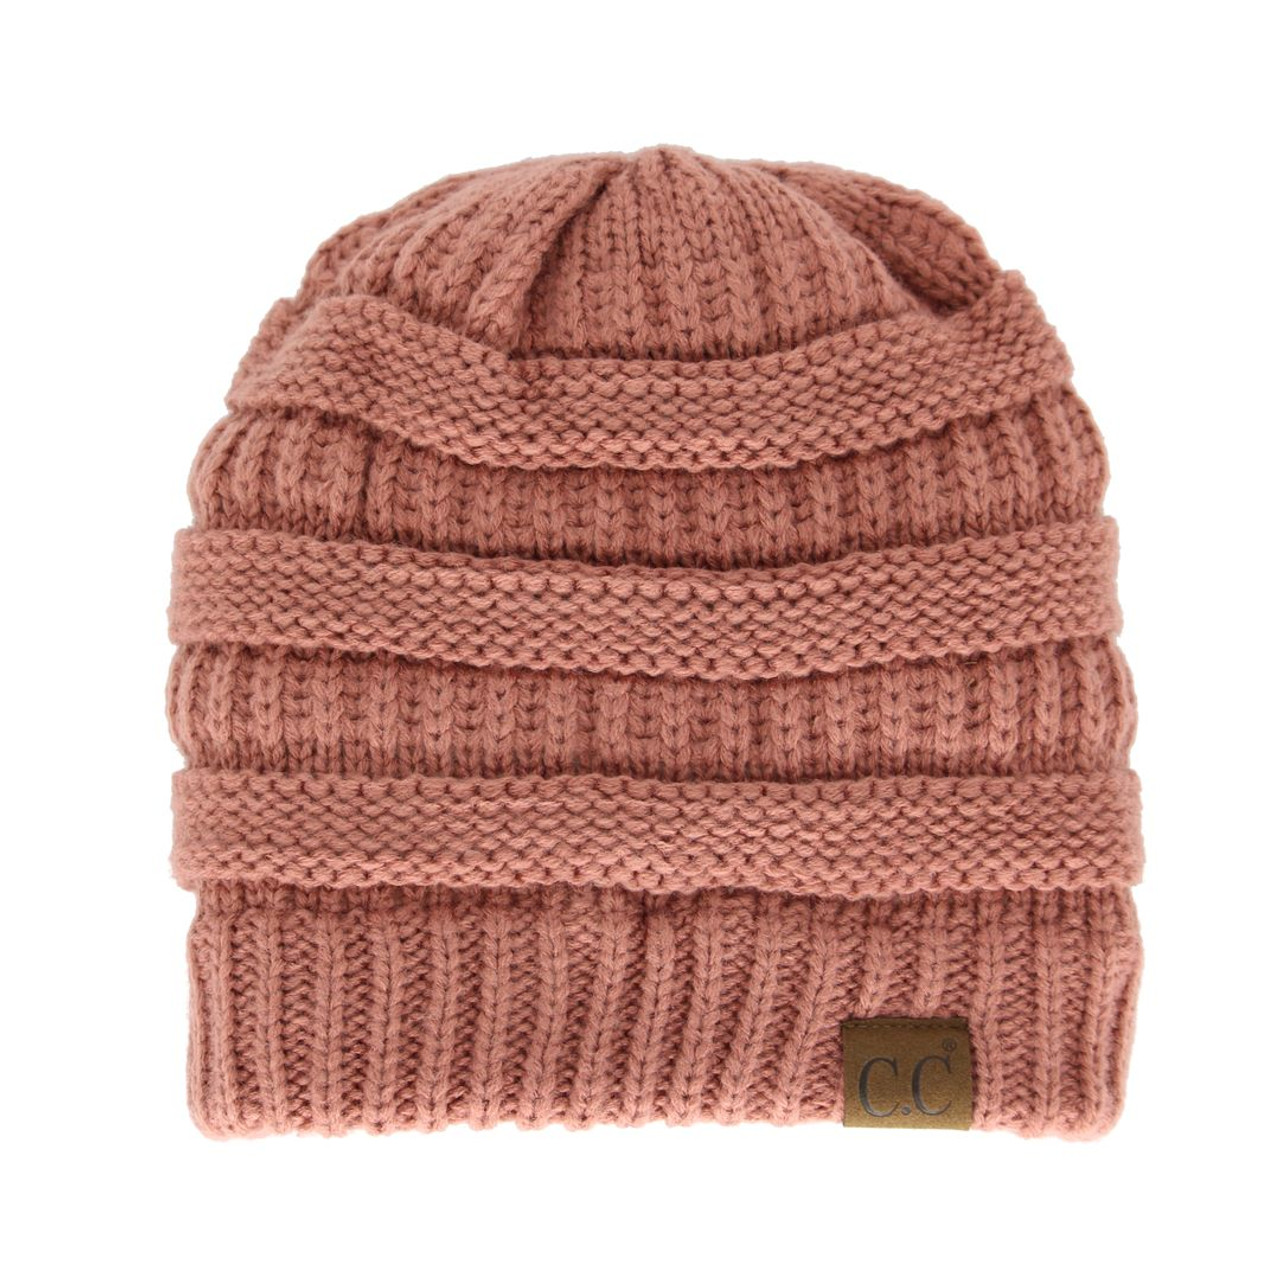 4300f52204605b Original C.C Beanie - Mauve - Trendy Threads Inc